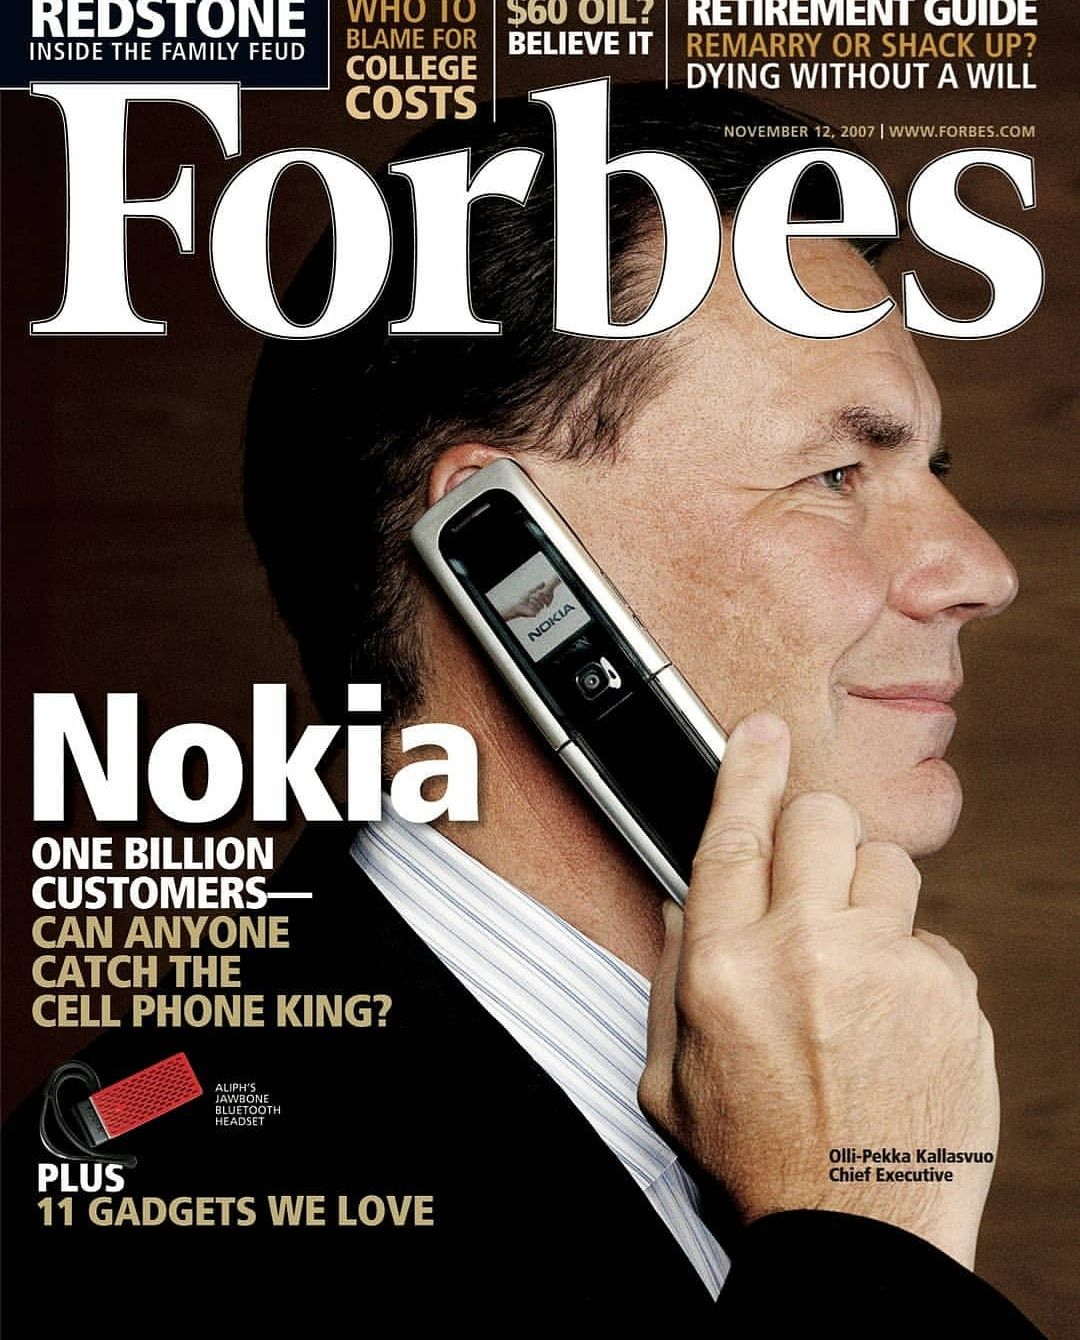 Forbes Cover in 2007 #vintageads #Ads #vintage #PrintAd # ...